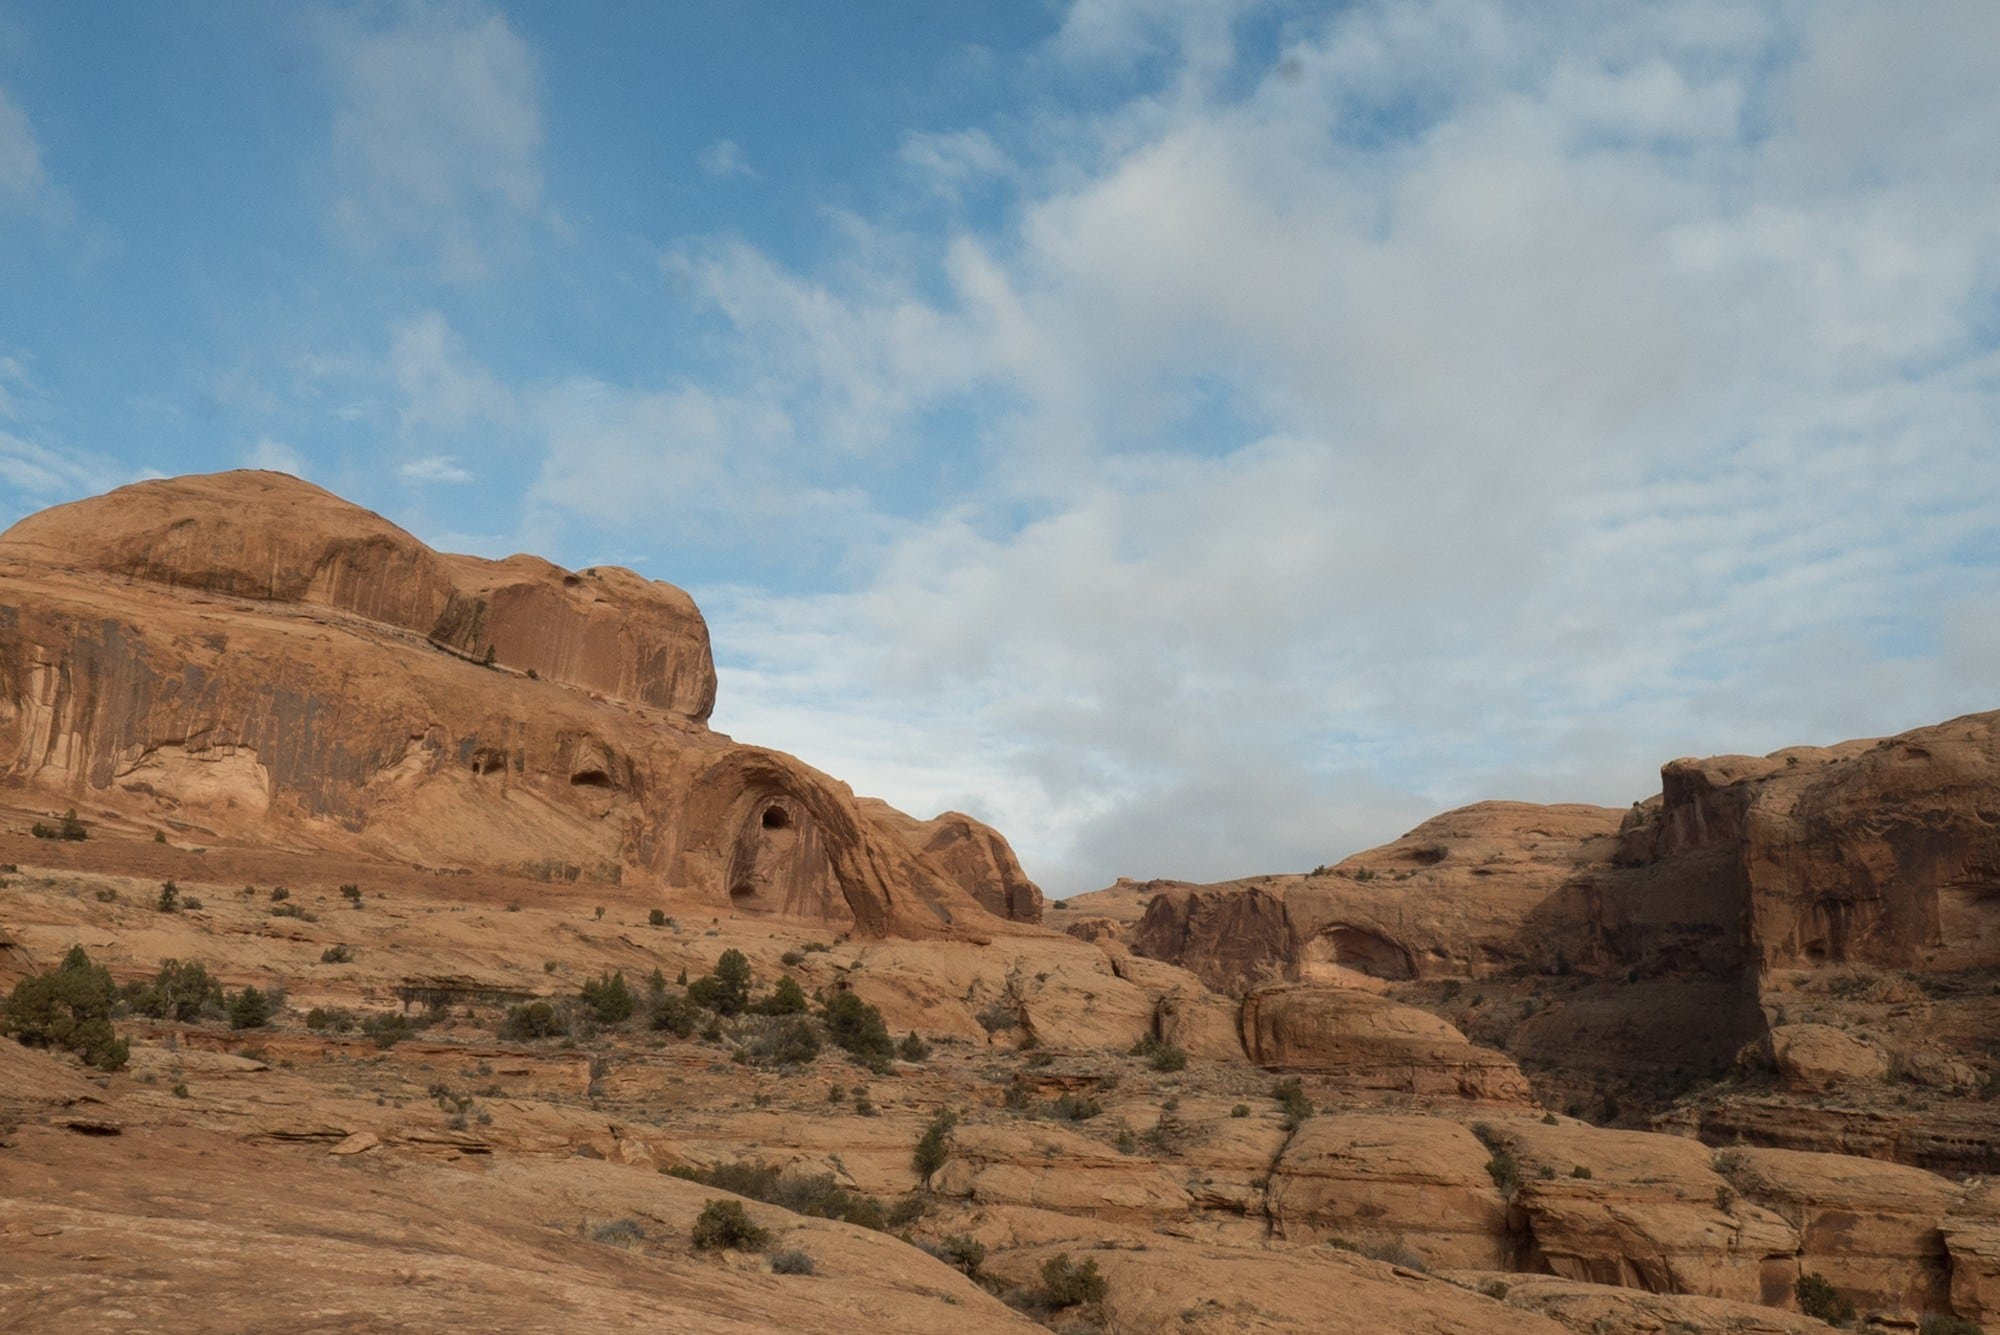 The Corona Arch trail is an awesome short, dog-friendly hike right outside Moab leading to a huge arch. Get the full guide here.